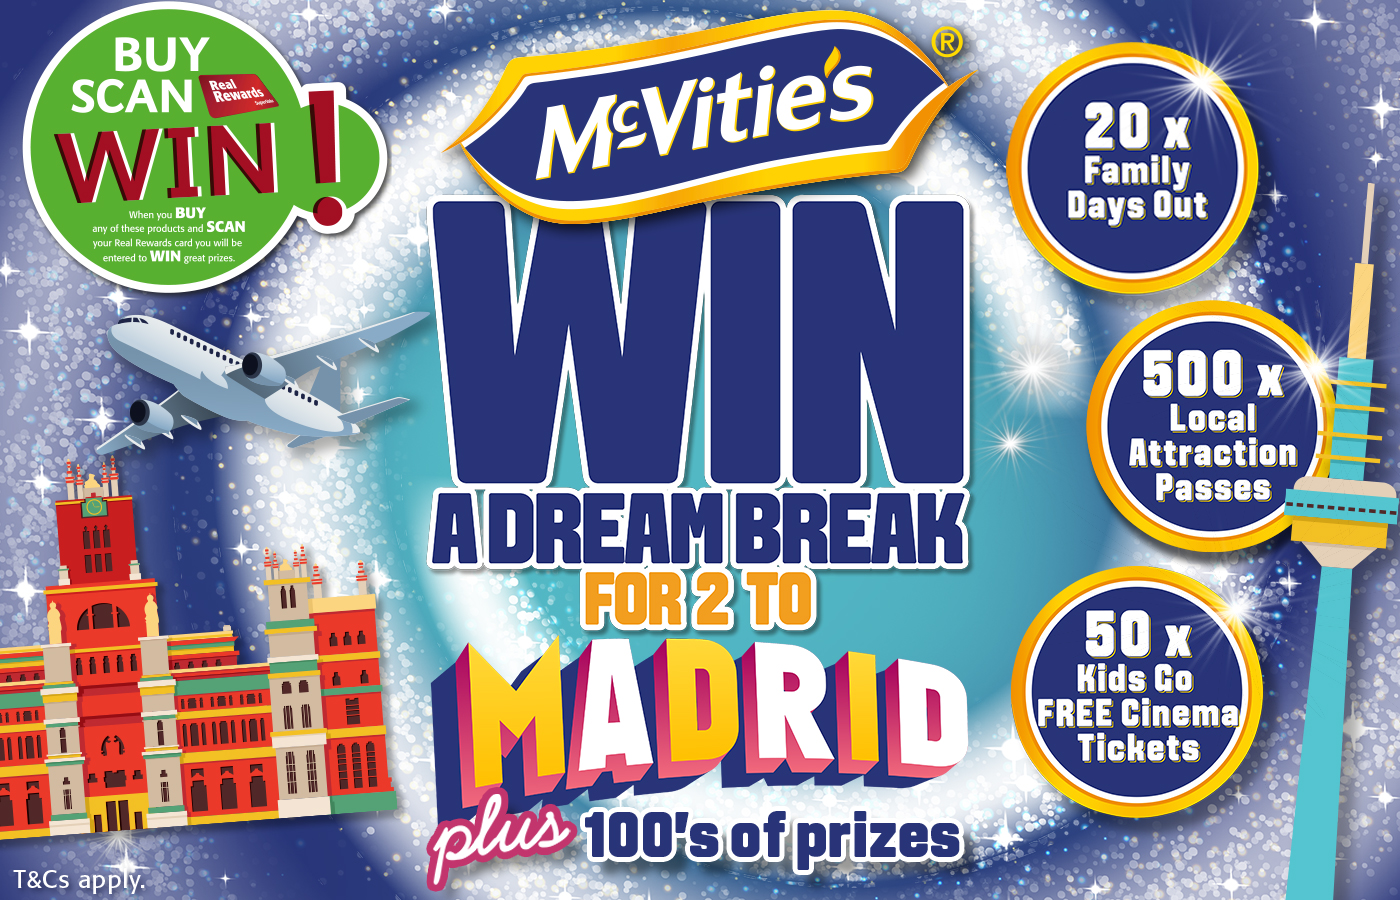 Win with McVities